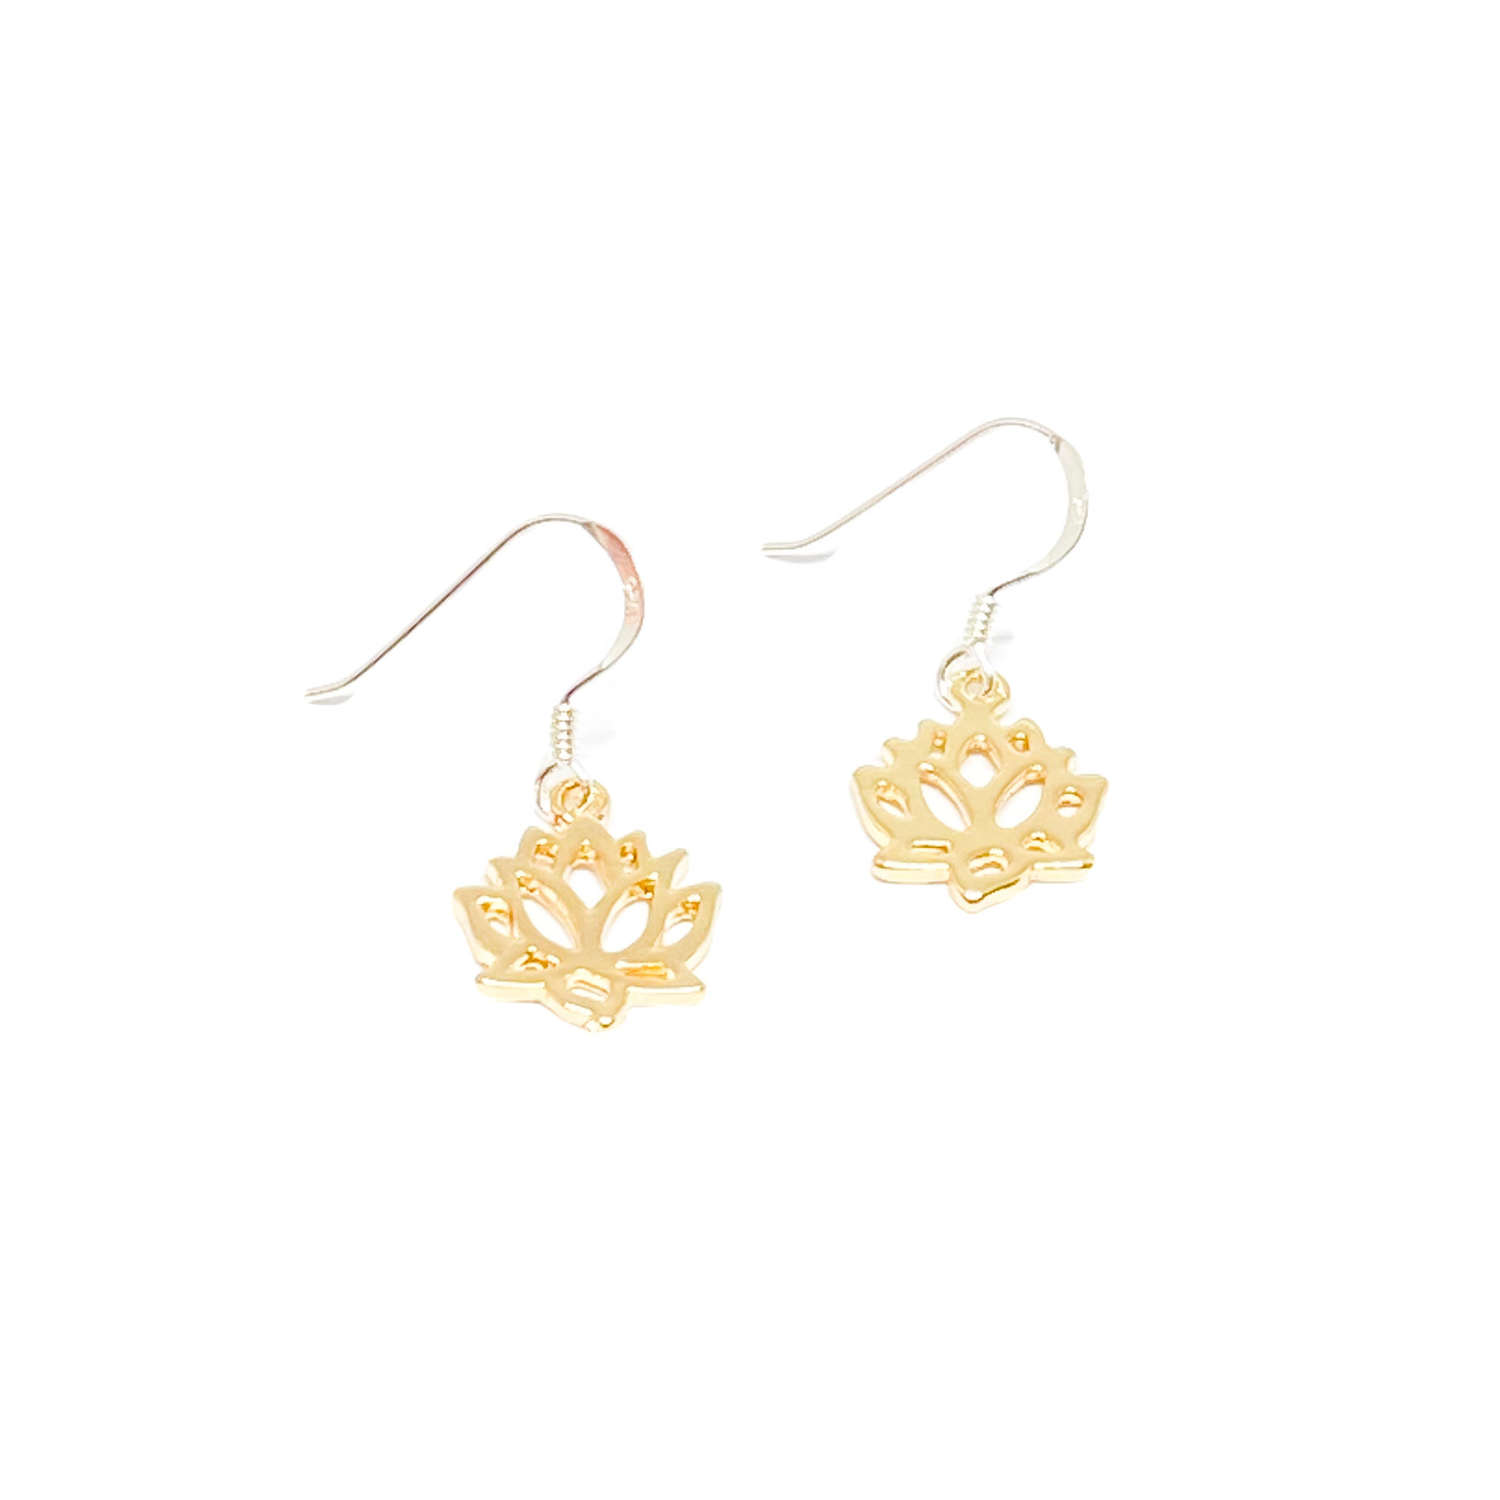 India Lotus Flower Sterling Silver Earrings - Gold